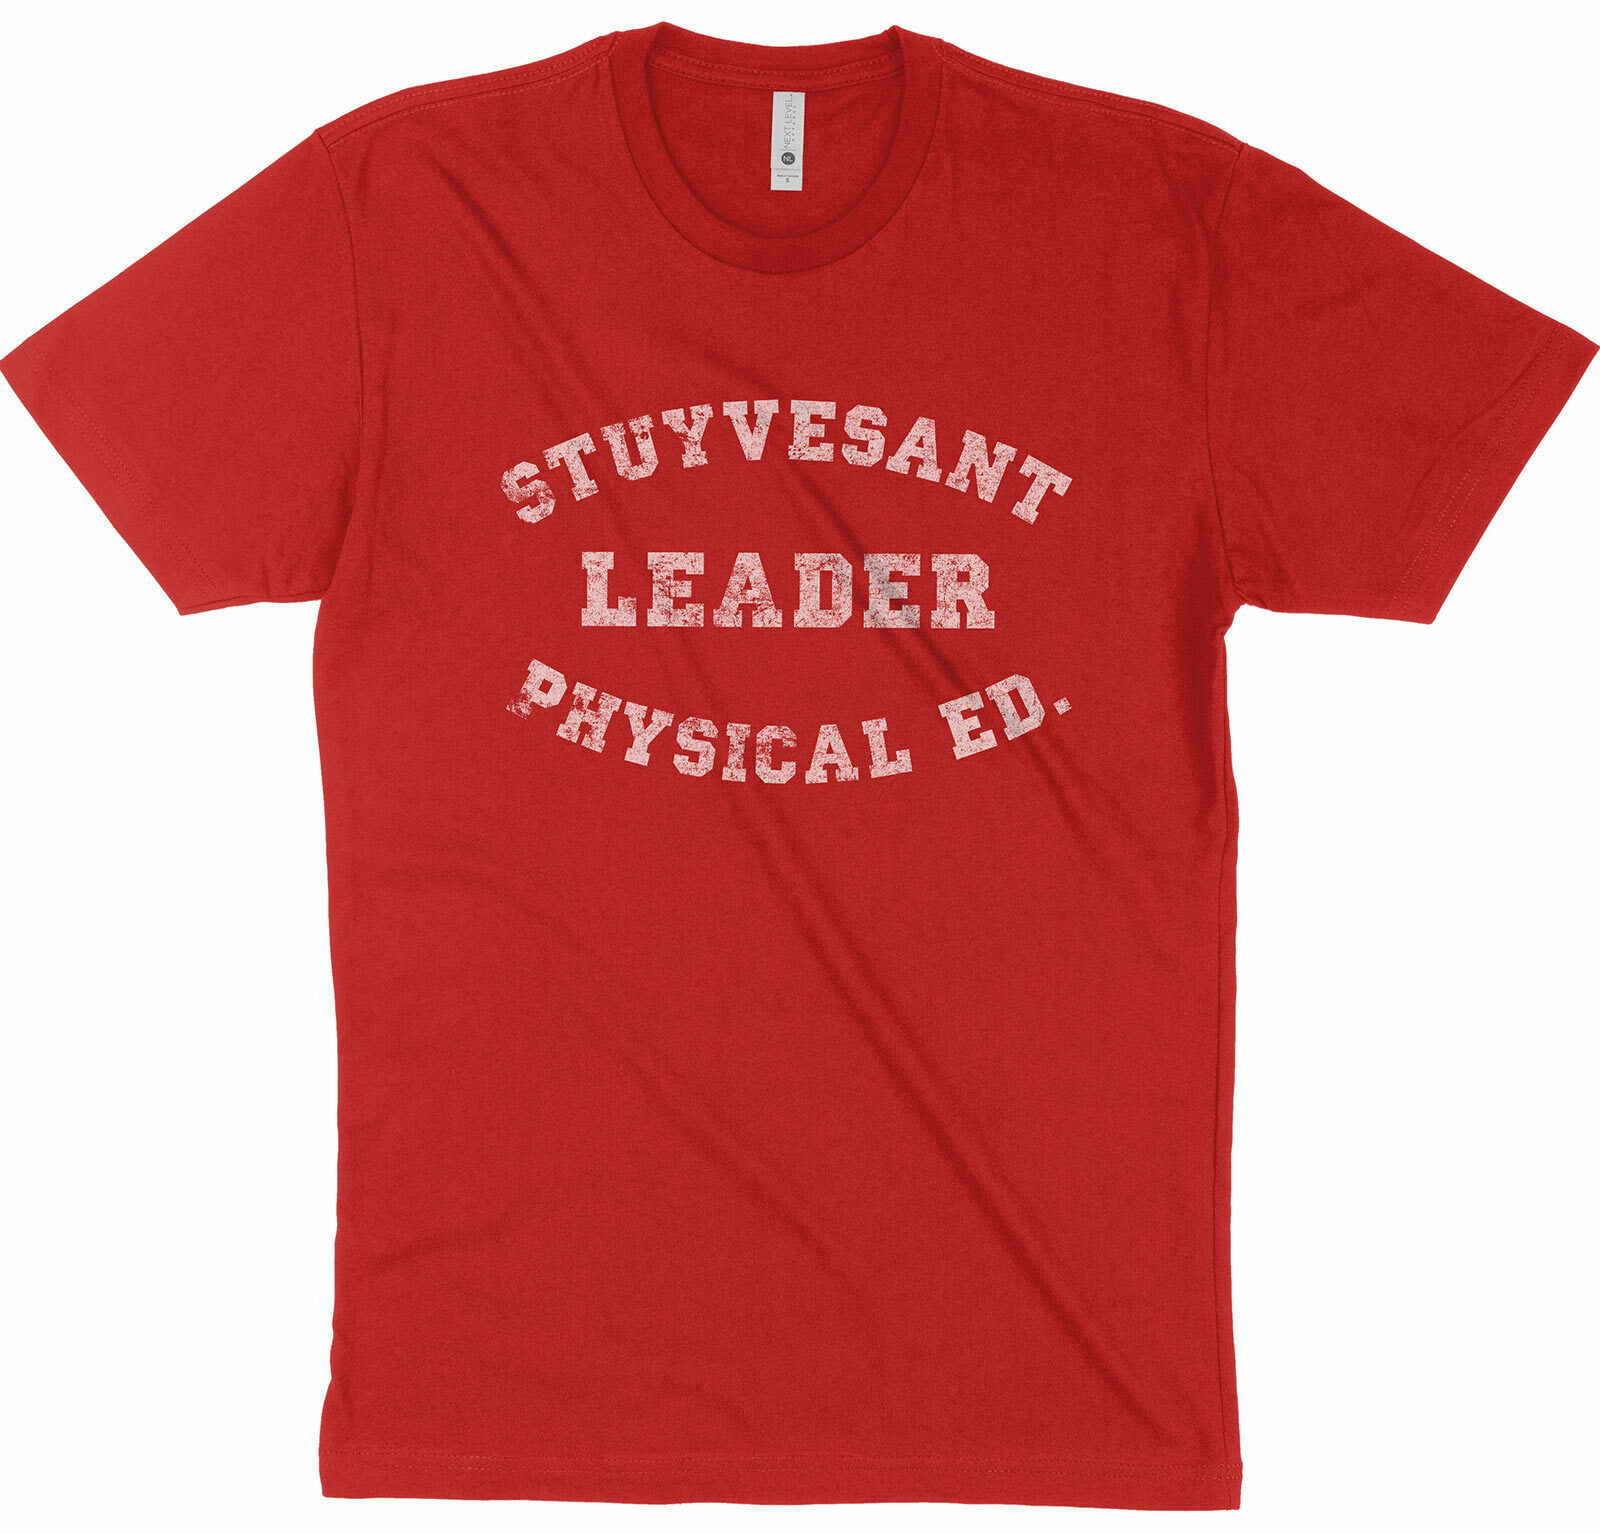 STUYVESANT LEADER PE retro 80's AD Rock Beastie Boys T-Shirt SIZES S-5X